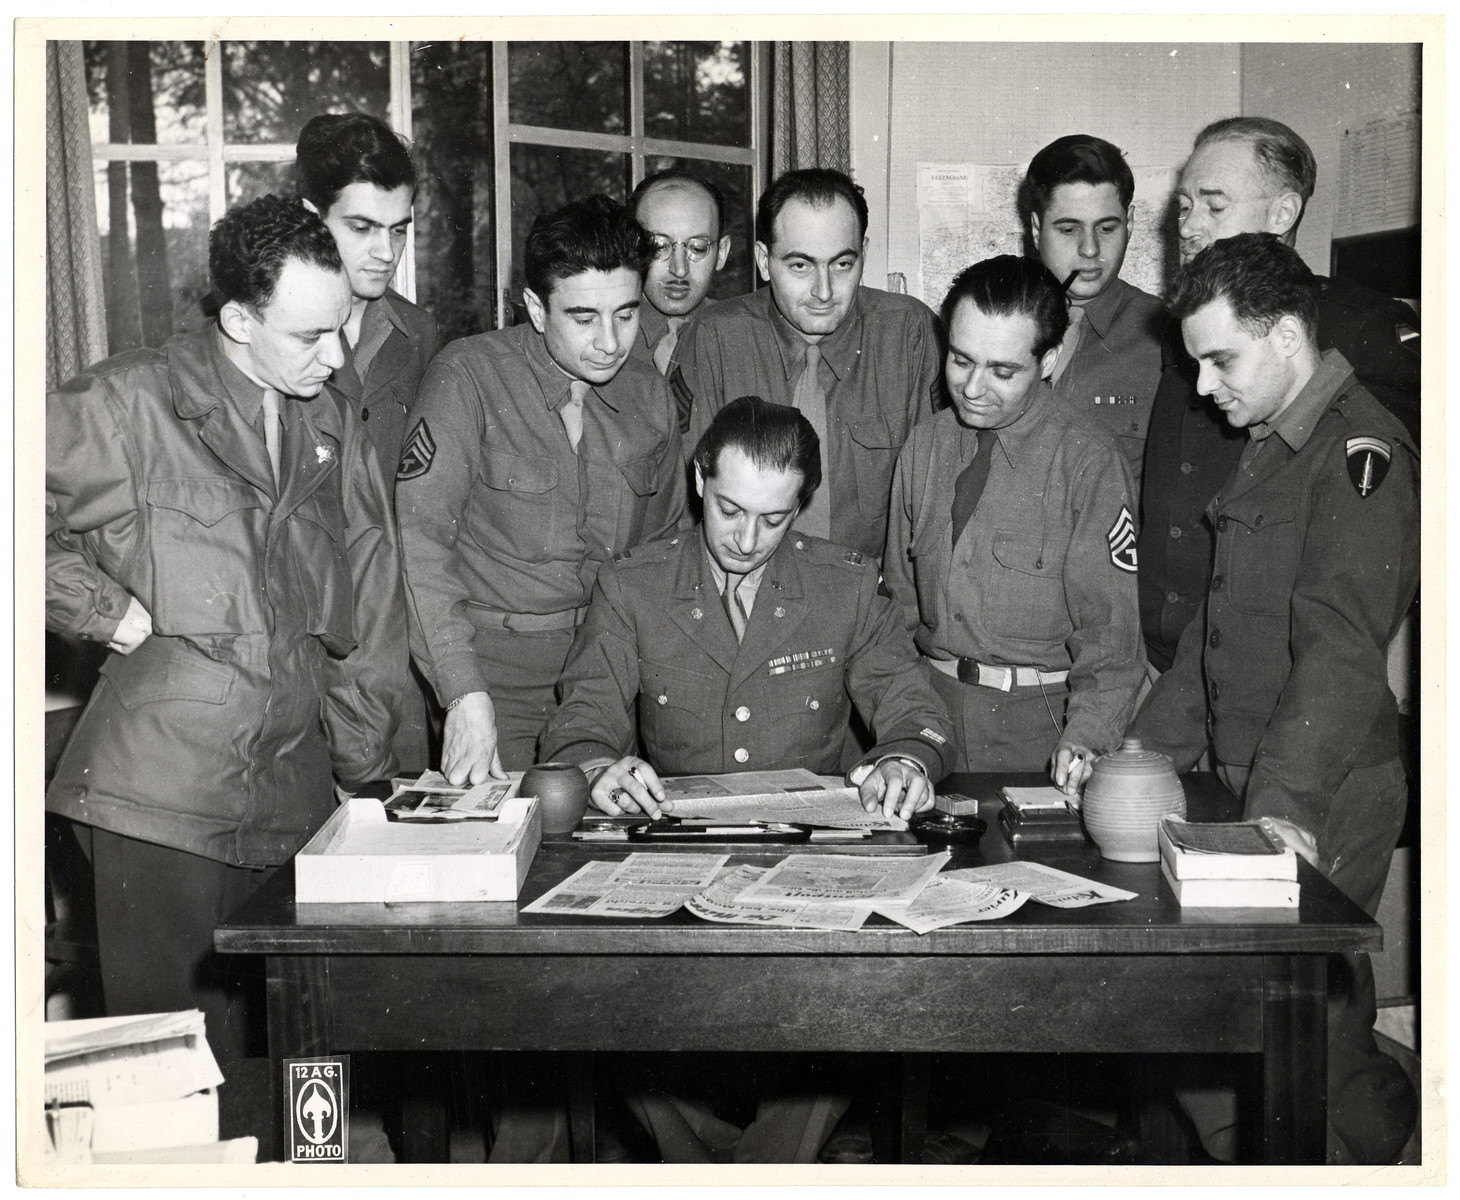 Members of the 4th Communications Unit, a counter-intelligence unit, study the German newspapers it was responsible for publishing.  Almost all the members were naturalized Americans, themselves refugees from Nazi Germany.    Among those pictured are: seated, Hans Habe (born Janos Békessey), and from left to right,  unknown; Ernest (originally Ernst) Wynder, Konrad Kellen (last name originally Katzenellenbogen, unknown, Stefan Heym (birth name Helmut Flieg), Louis Atlas, Peter Weidenreich (last name later changed to Wyden), unknown, and Joseph Eaton, the donor,  is standing on the far right.